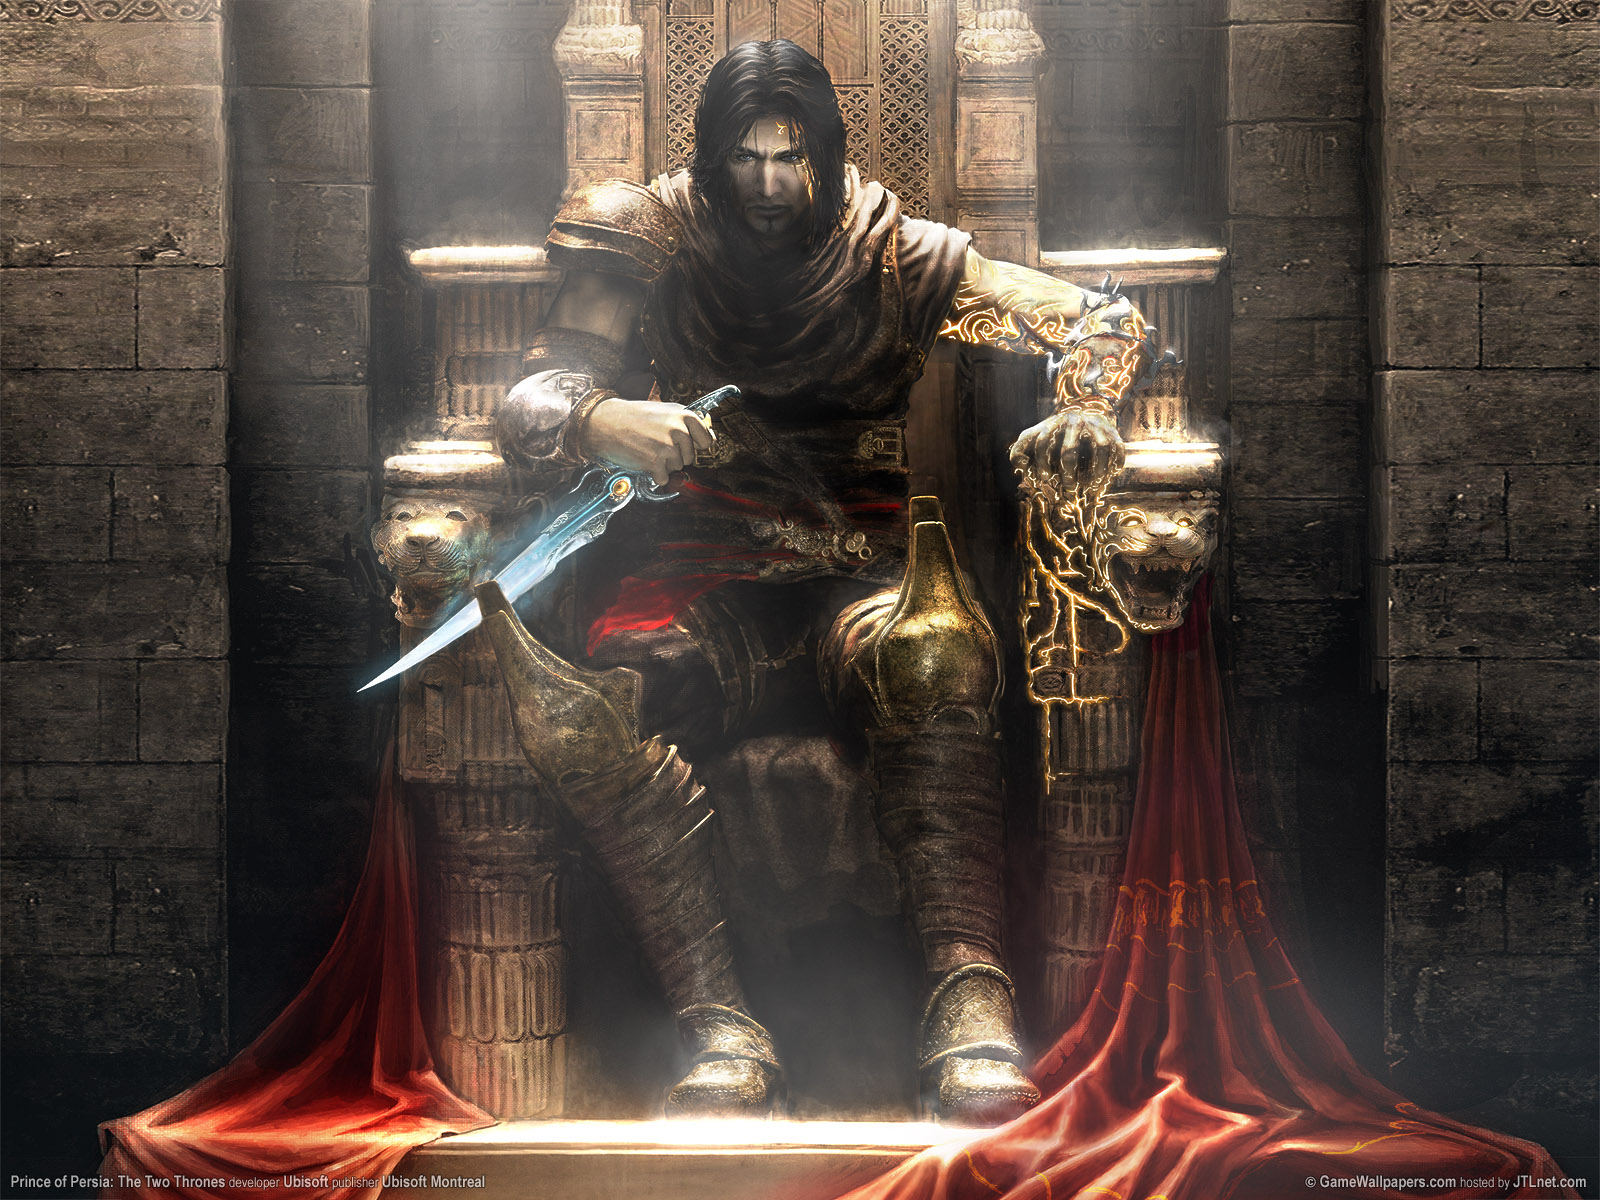 Download full size Prince of Persia wallpaper / Games / 1600x1200